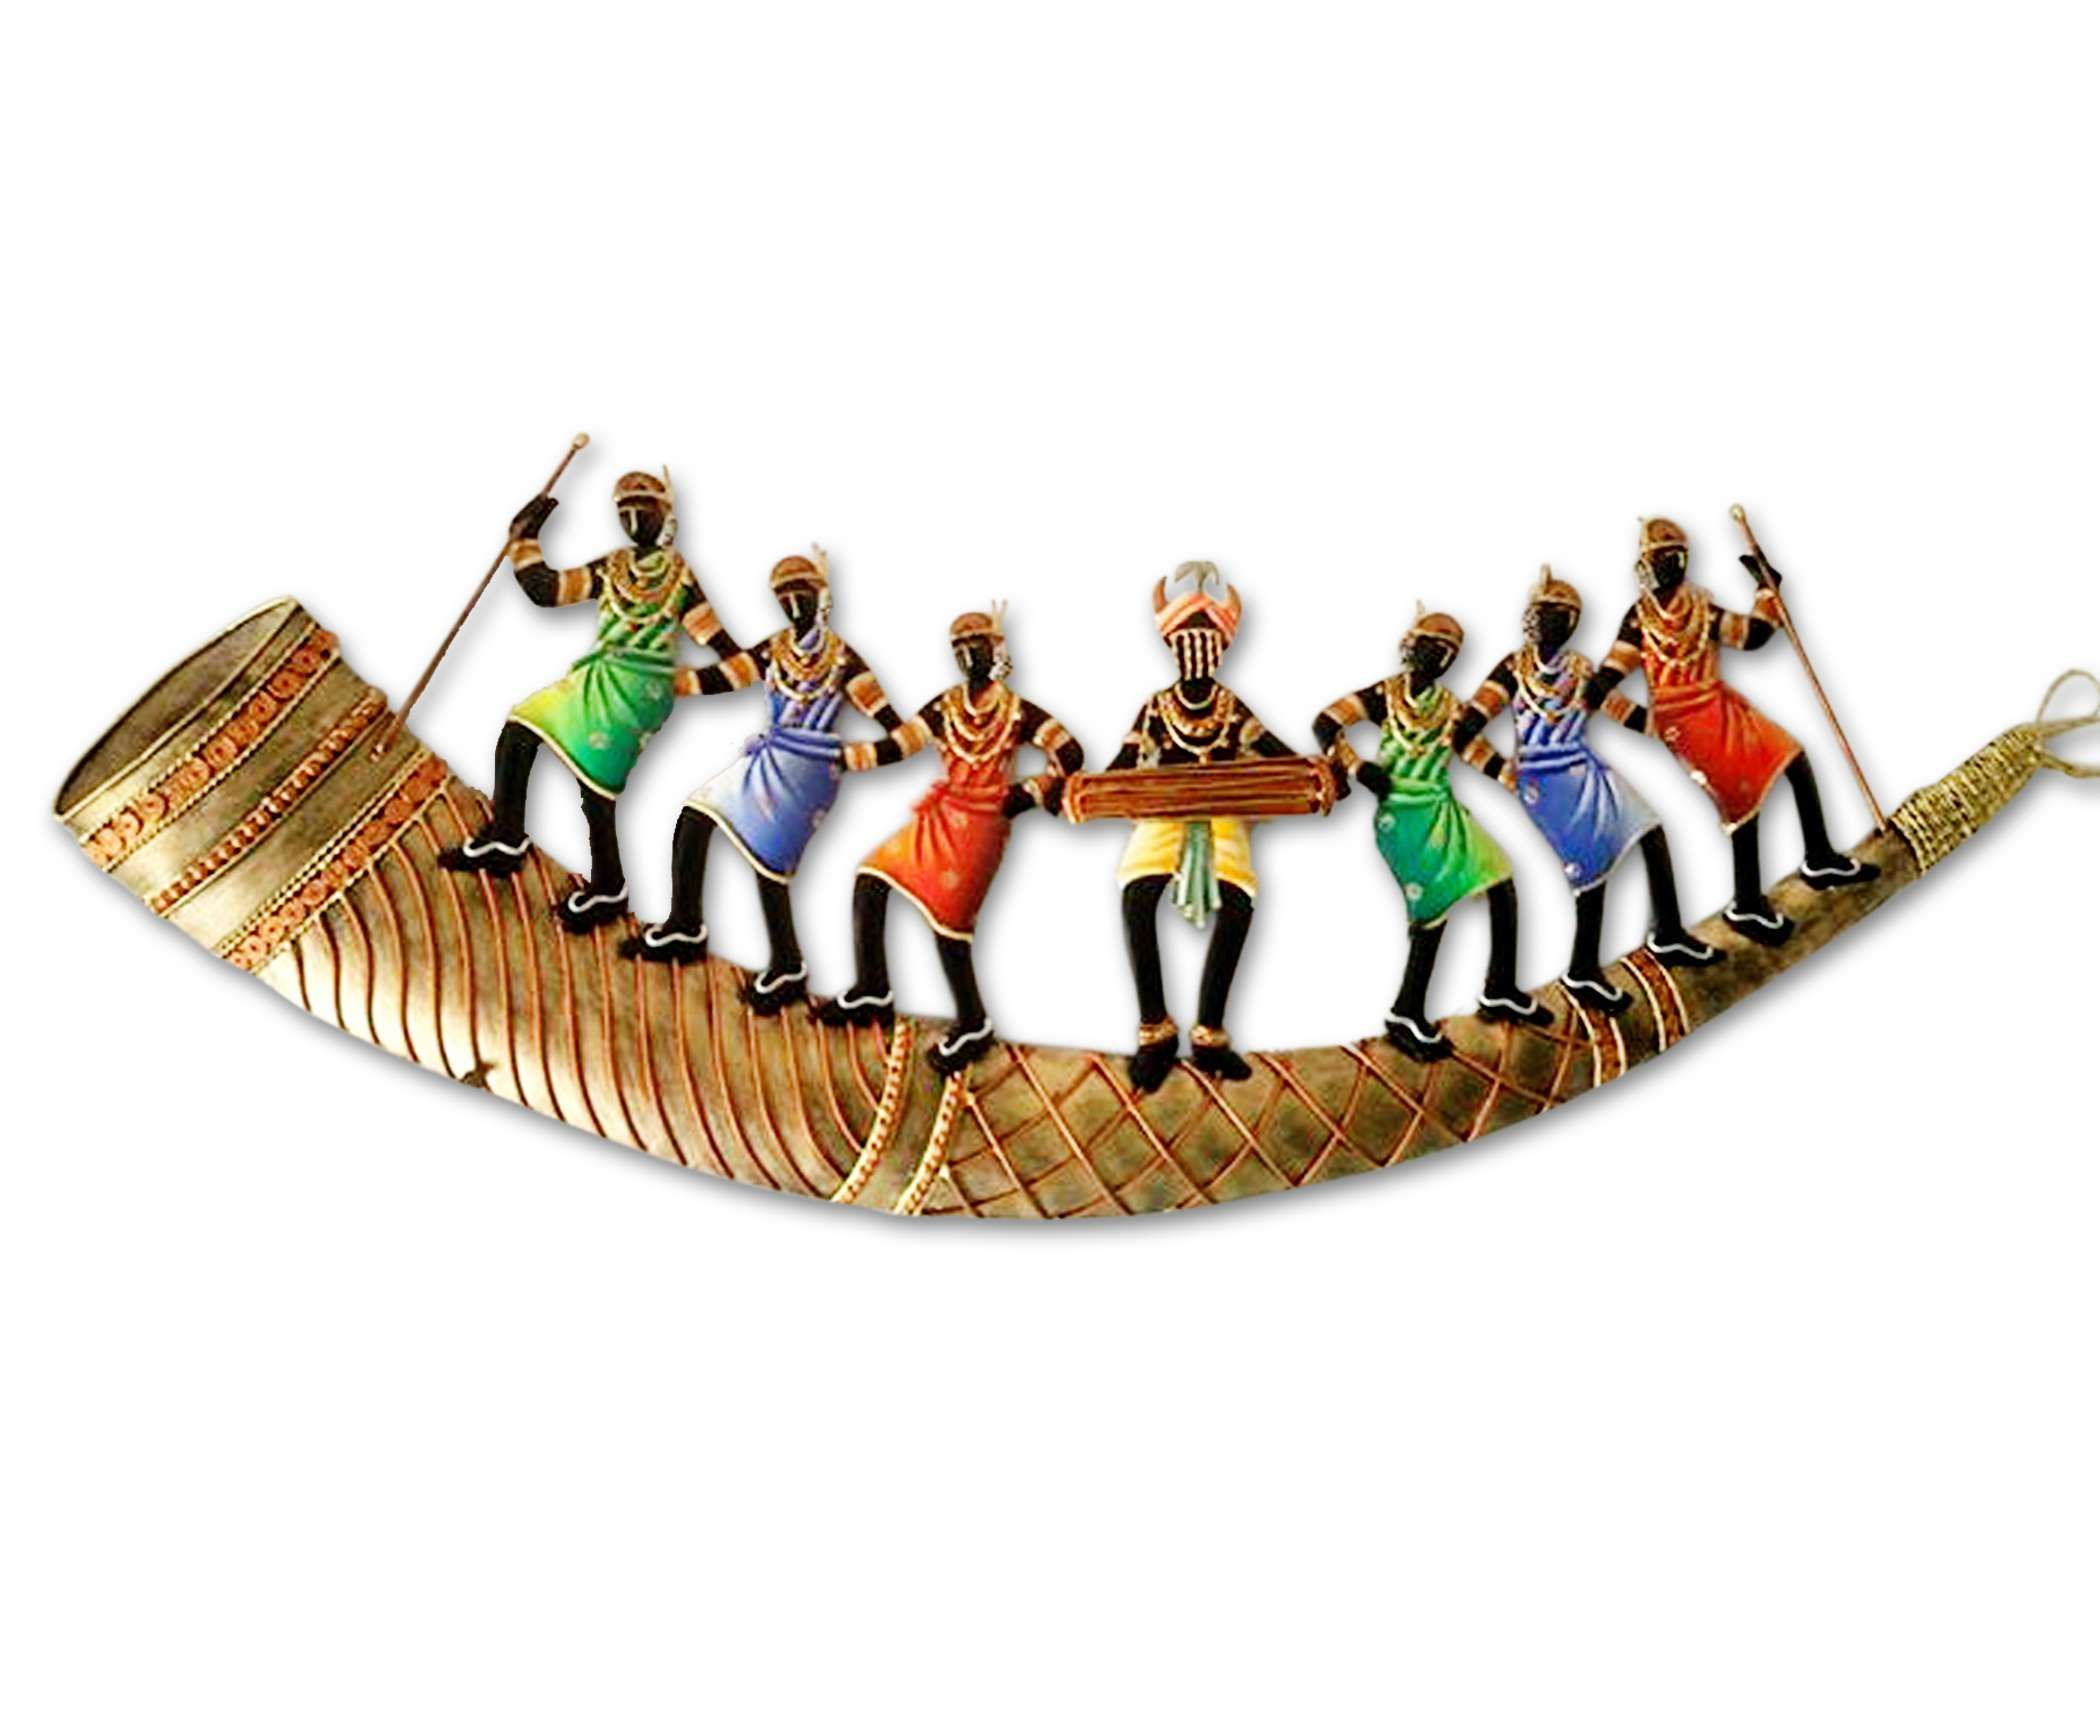 buy trumpet 7 adivasi people online shopping india home decor